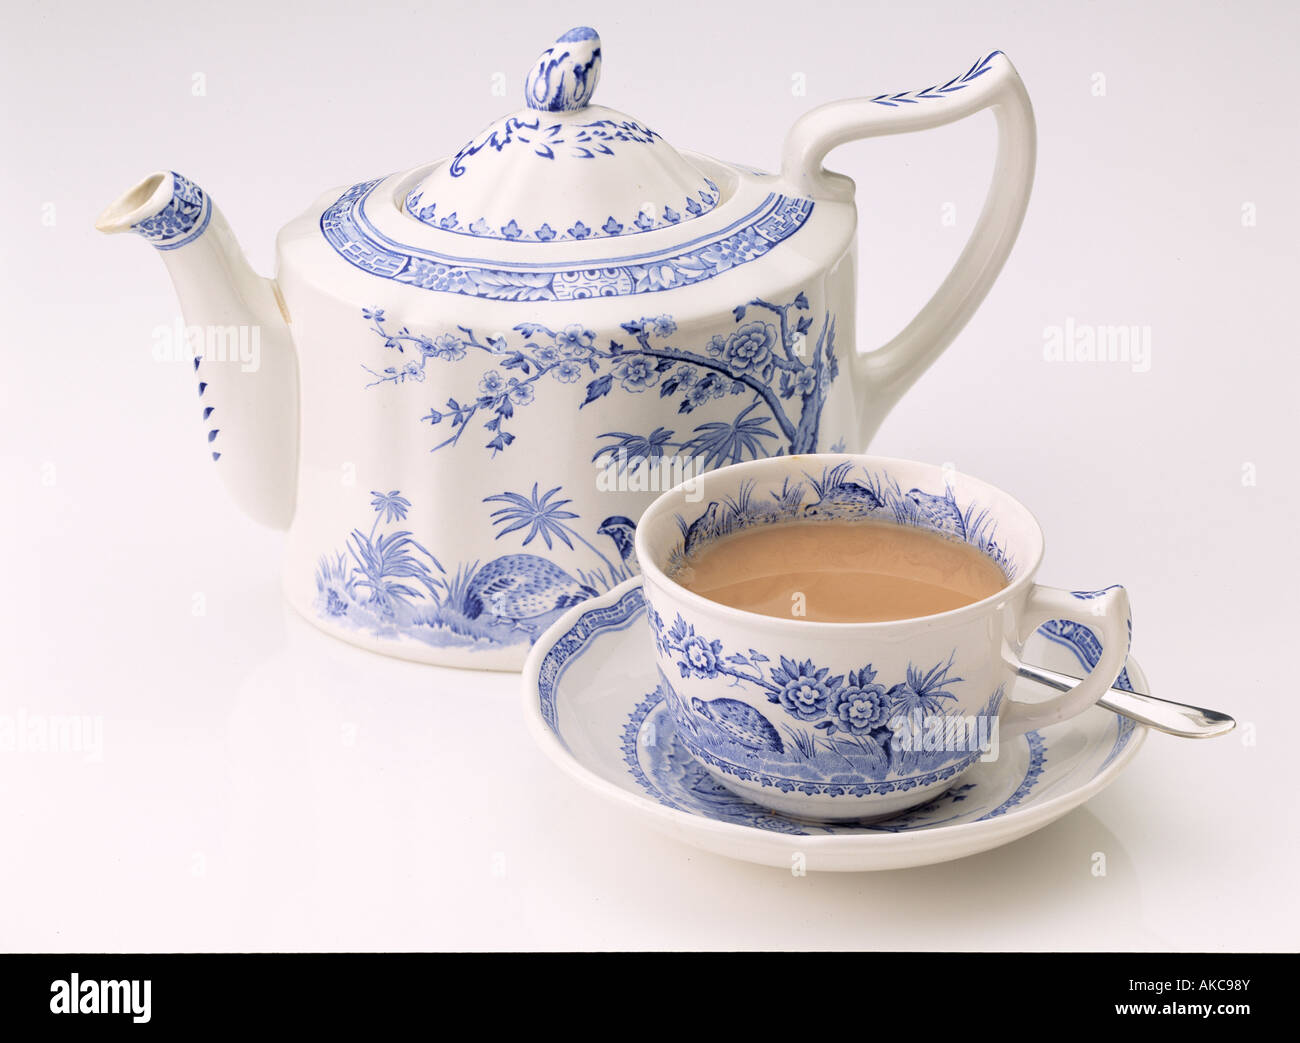 Teapot With Cup An Antique Wedgwood Teapot Cup And Saucer Of Tea On A White Stock